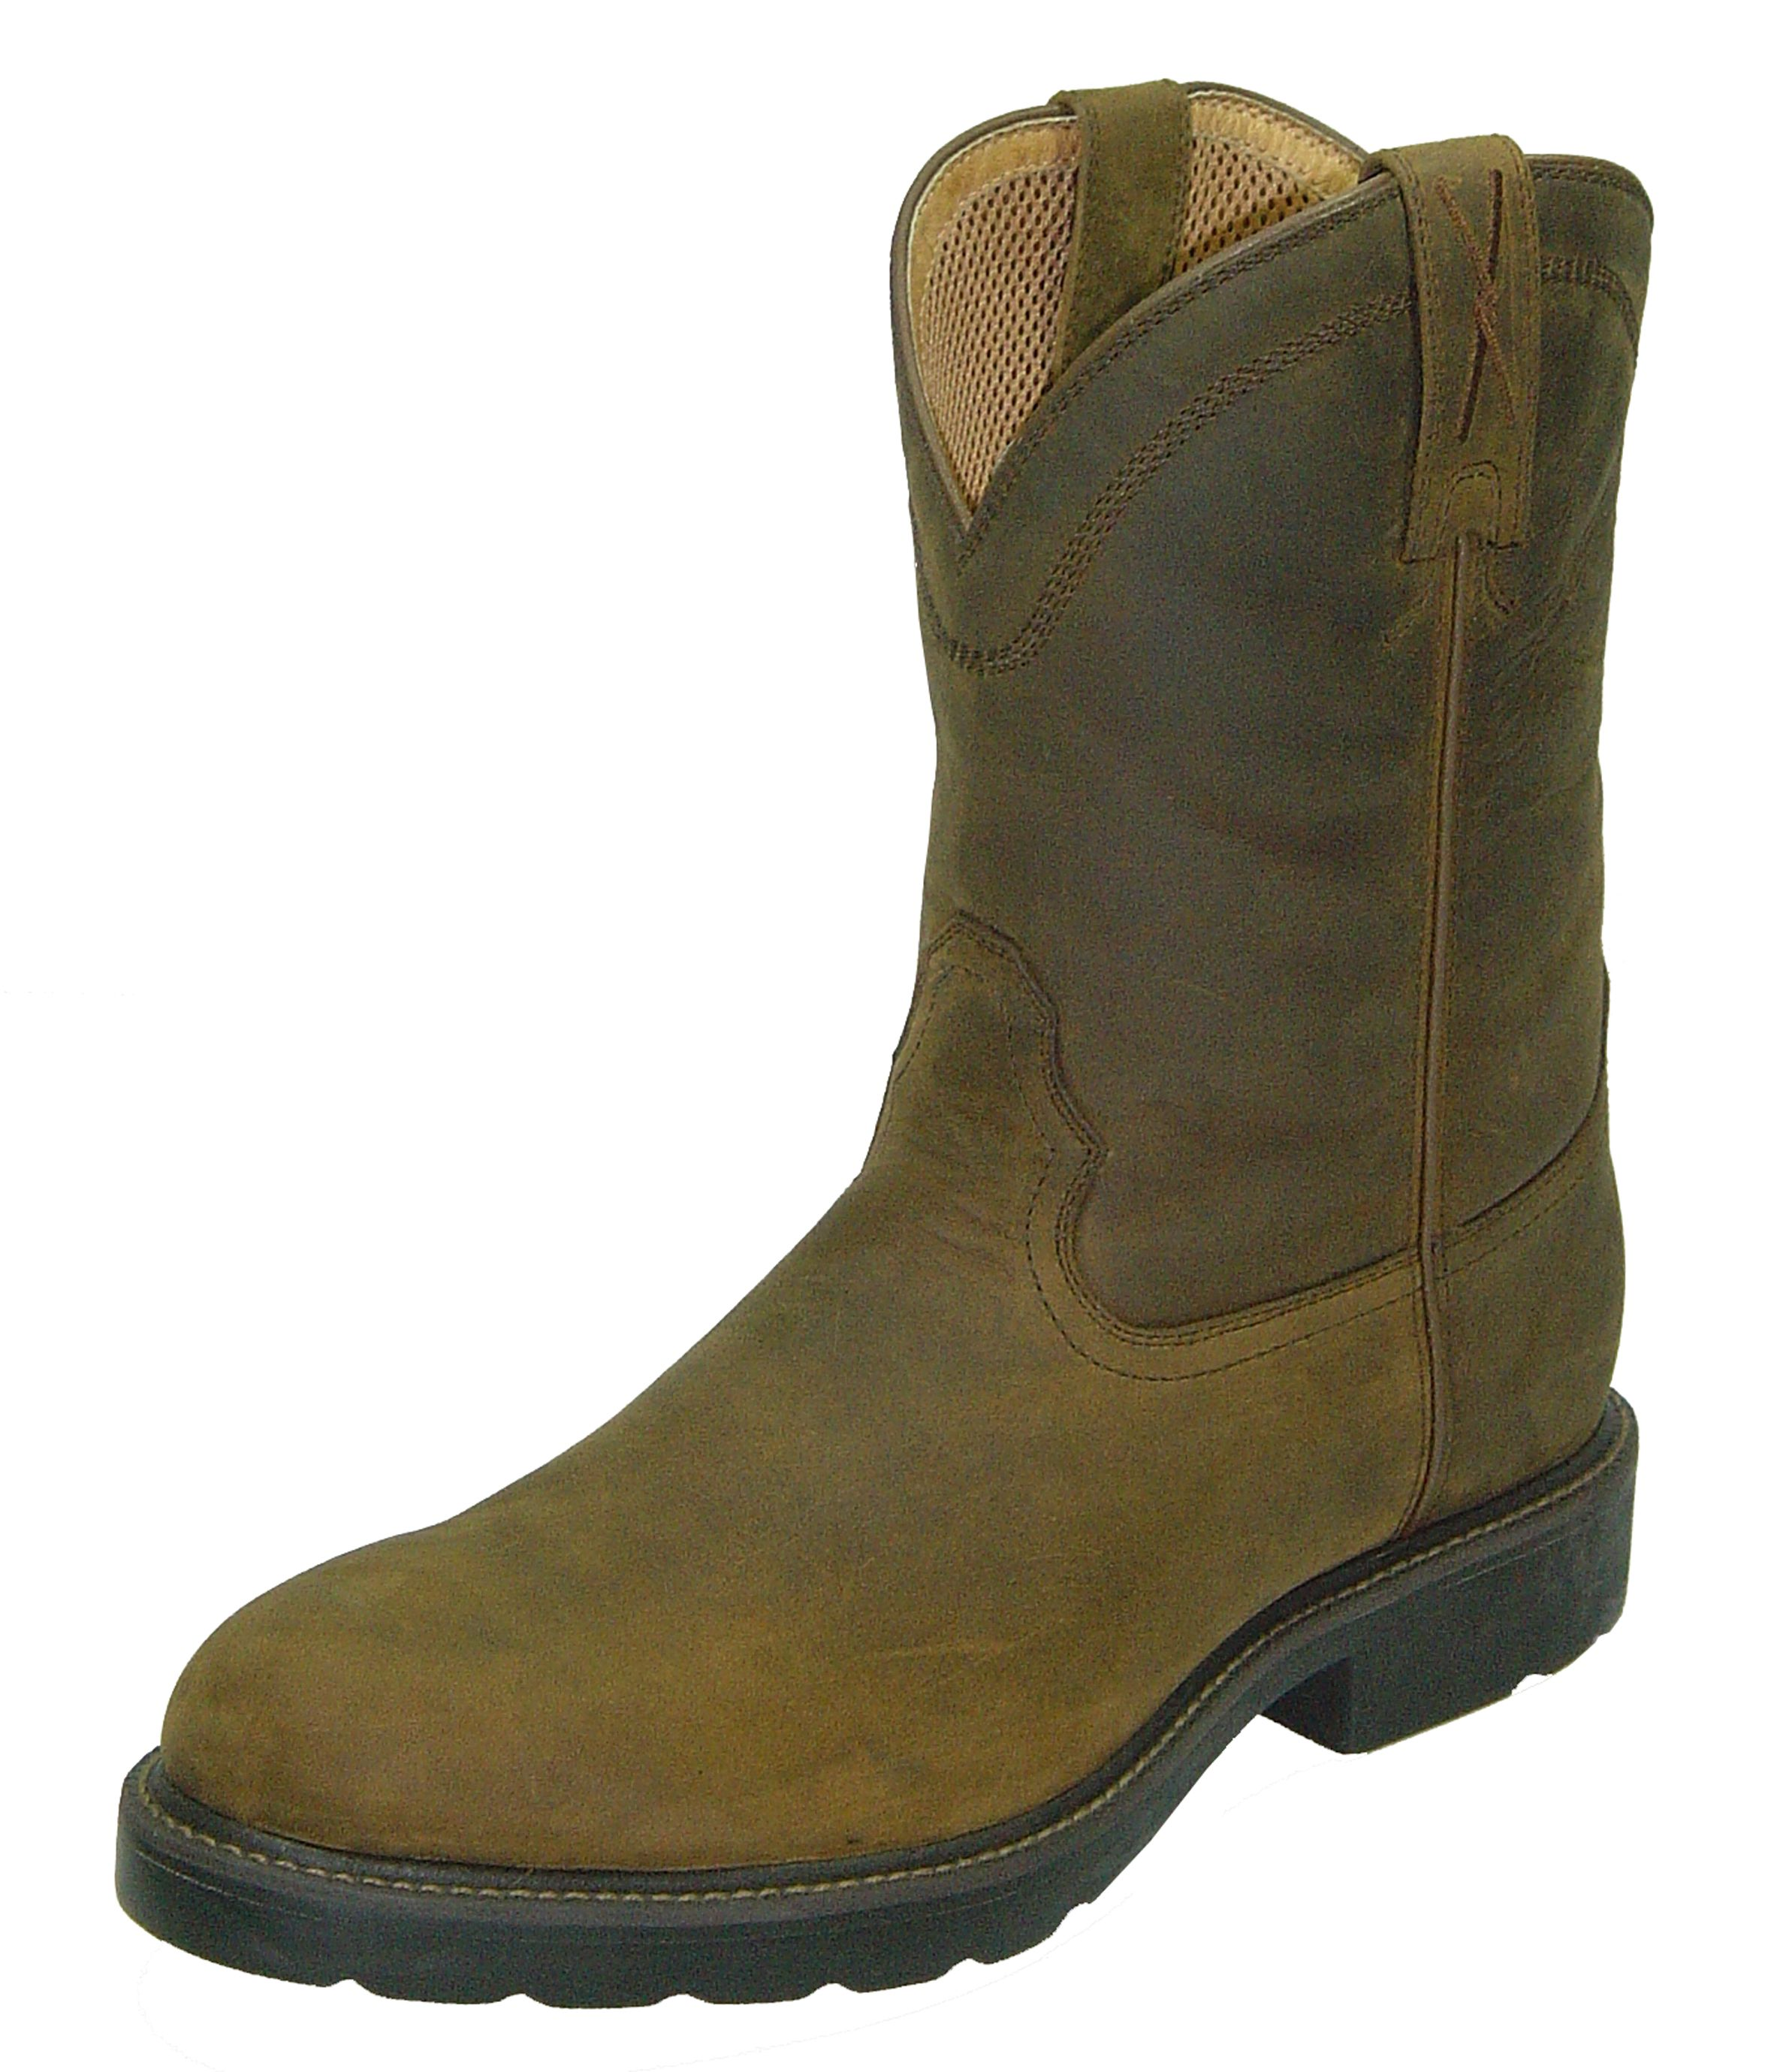 9929ba2e834 Twisted X Boots - Men's Cowboy Work Safety Toe - MSP0001 | Work ...